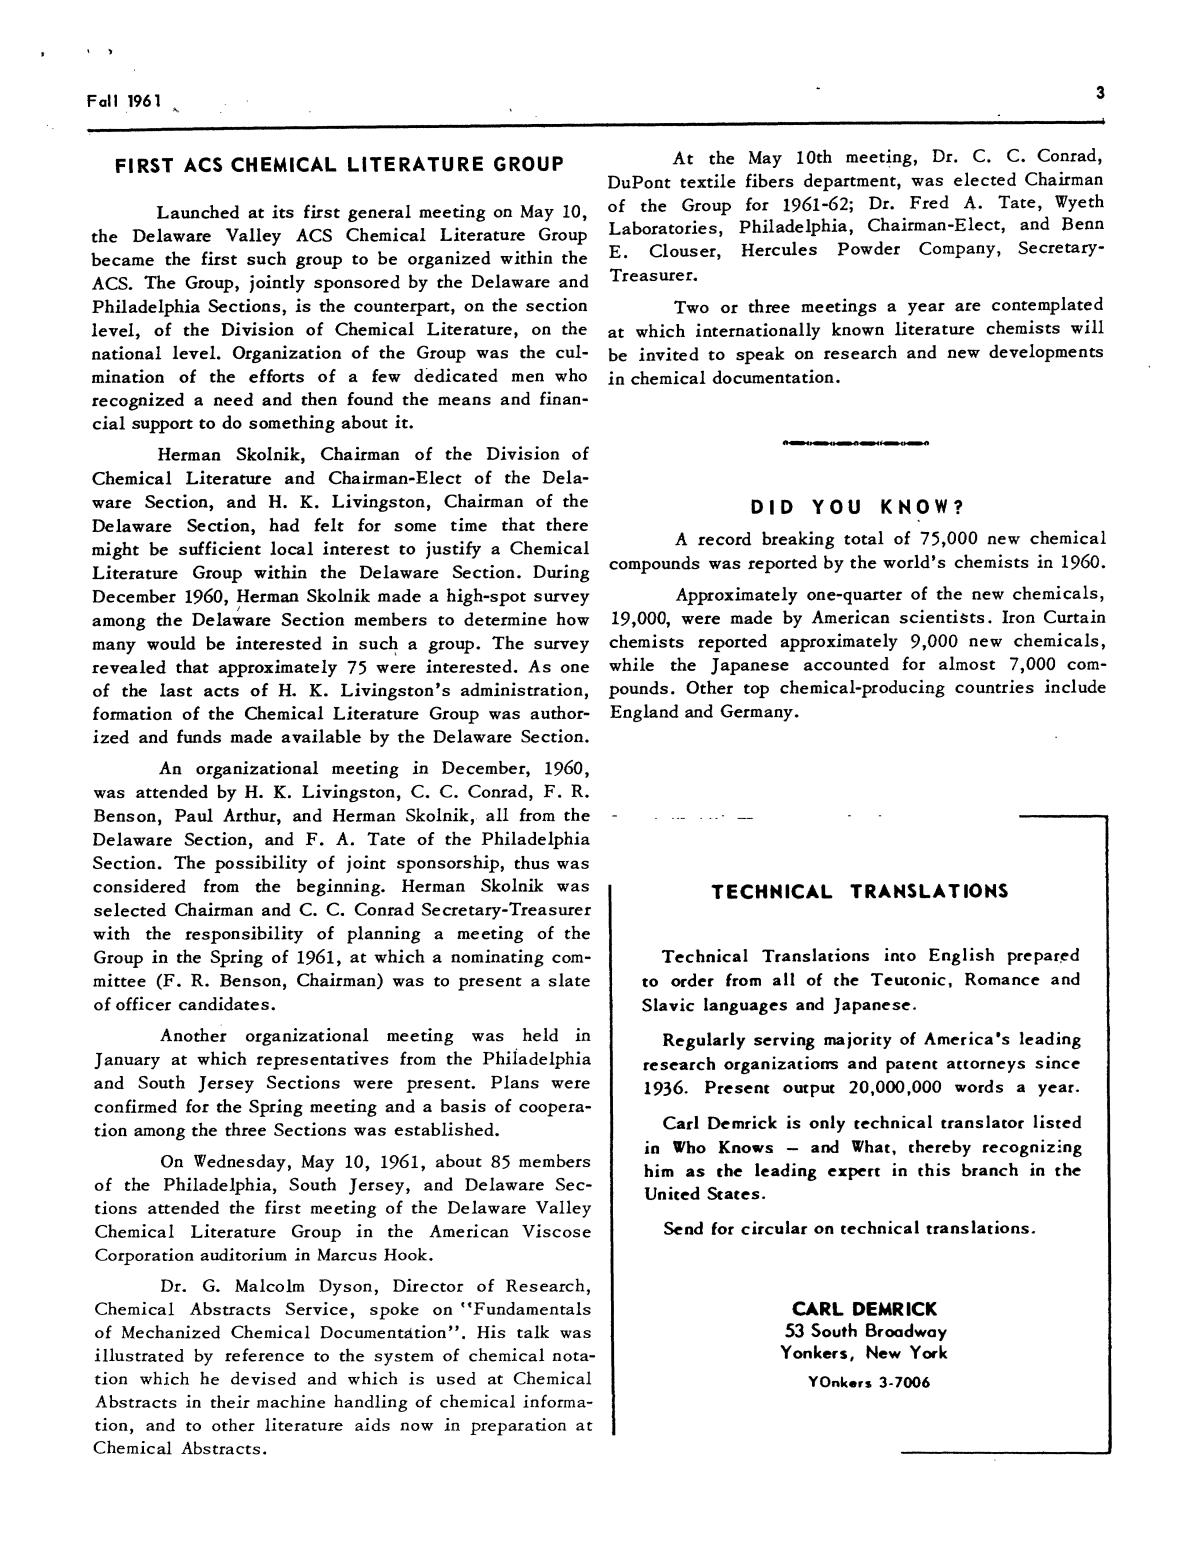 Chemical Literature, Volume 13, Number 3, Fall 1961                                                                                                      3